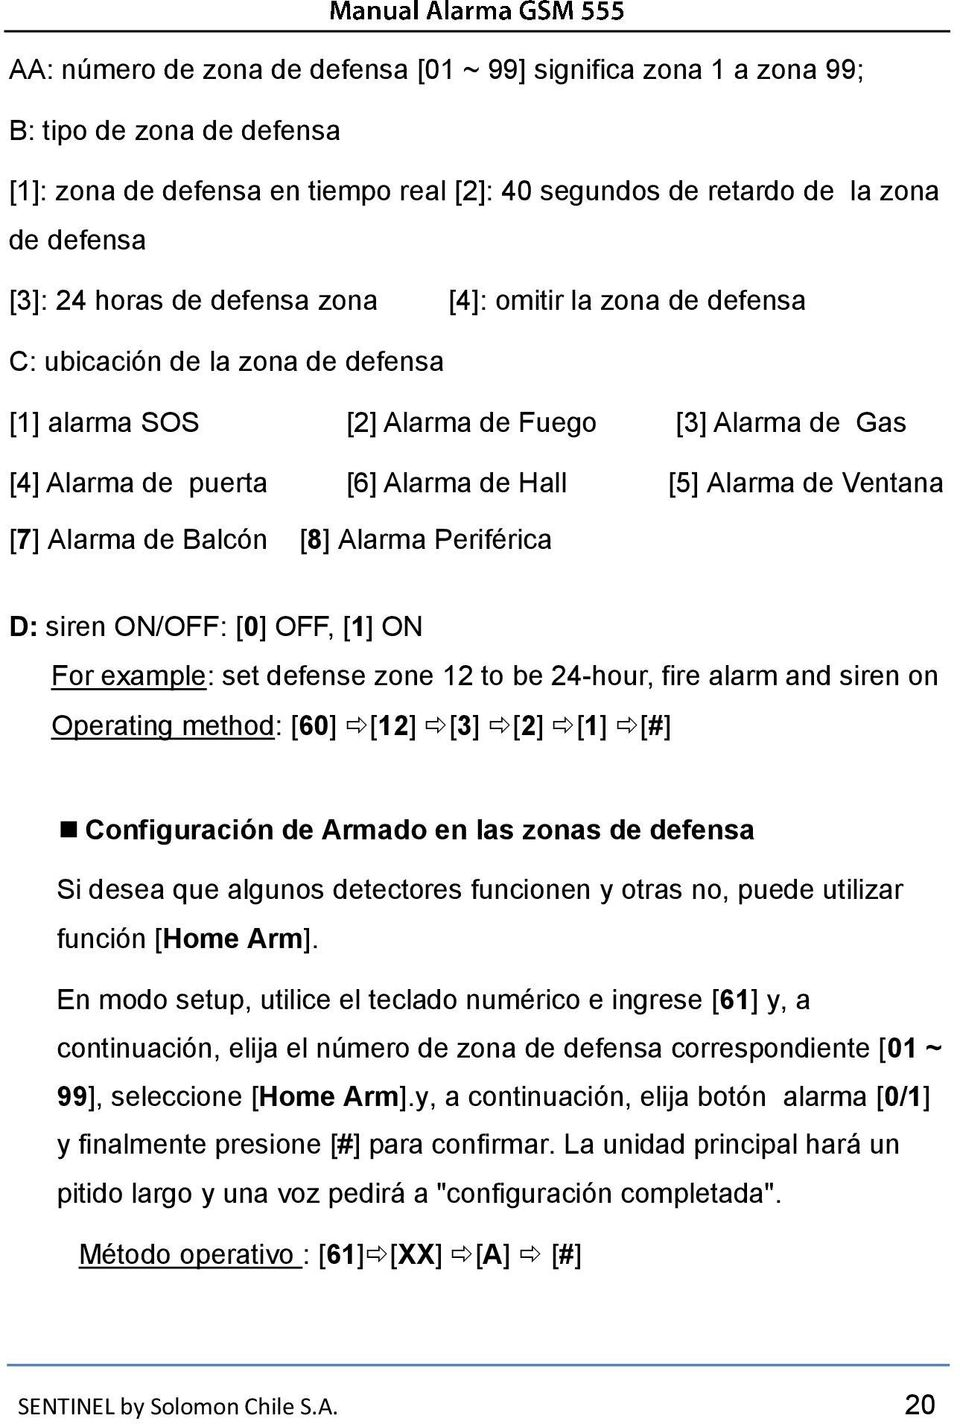 Alarma de Balcón [8] Alarma Periférica D: siren ON/OFF: [0] OFF, [1] ON For example: set defense zone 12 to be 24-hour, fire alarm and siren on Operating method: [60] [12] [3] [2] [1] [#]